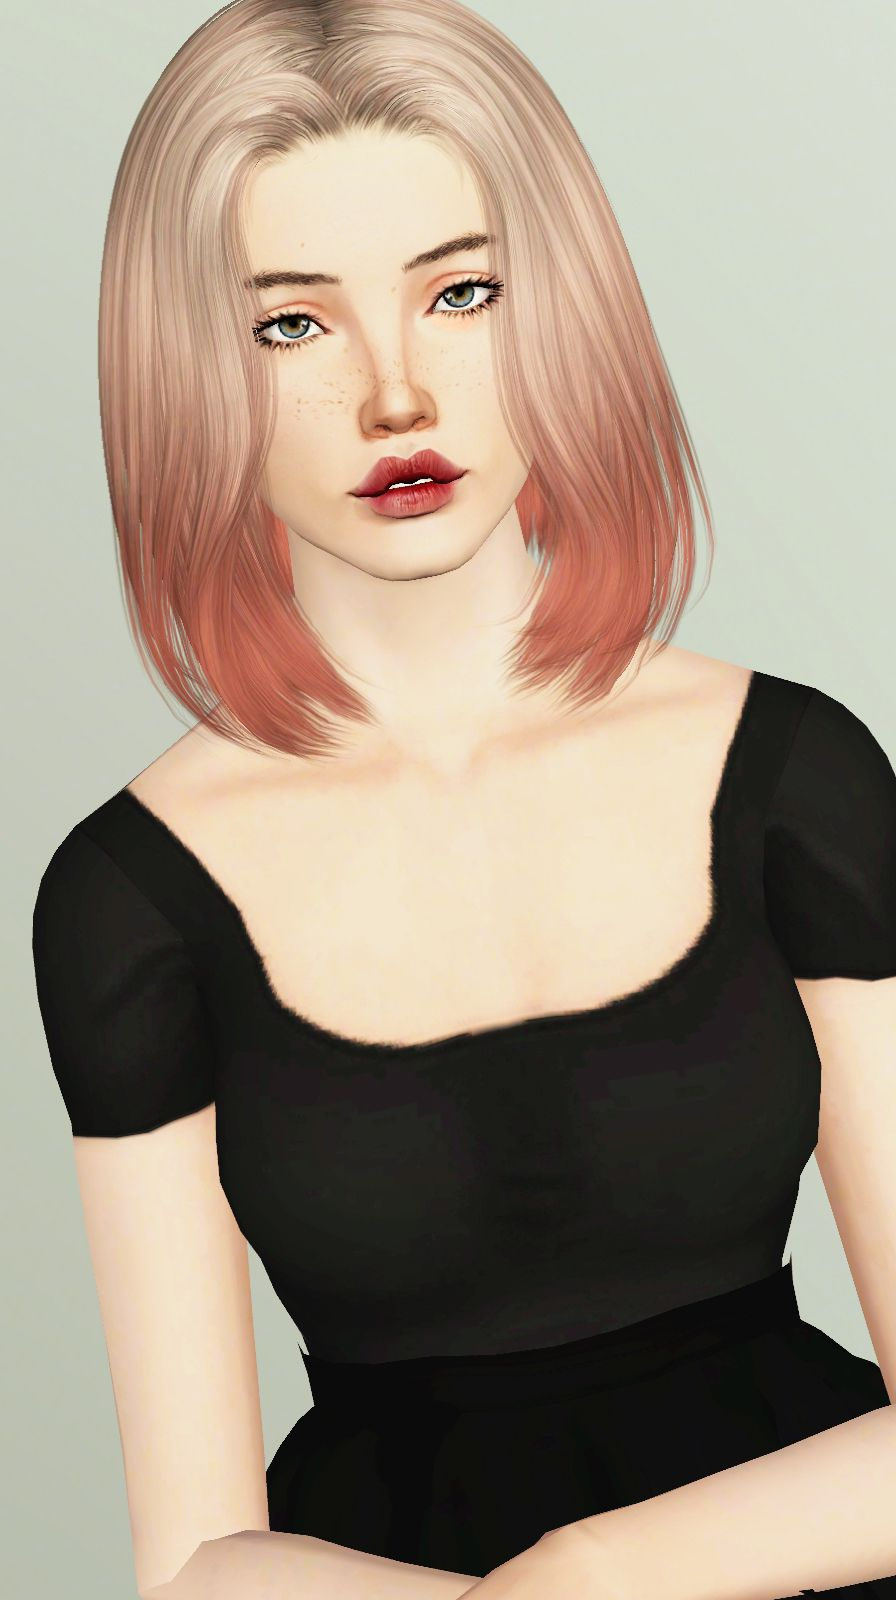 cc sims 3 how to download